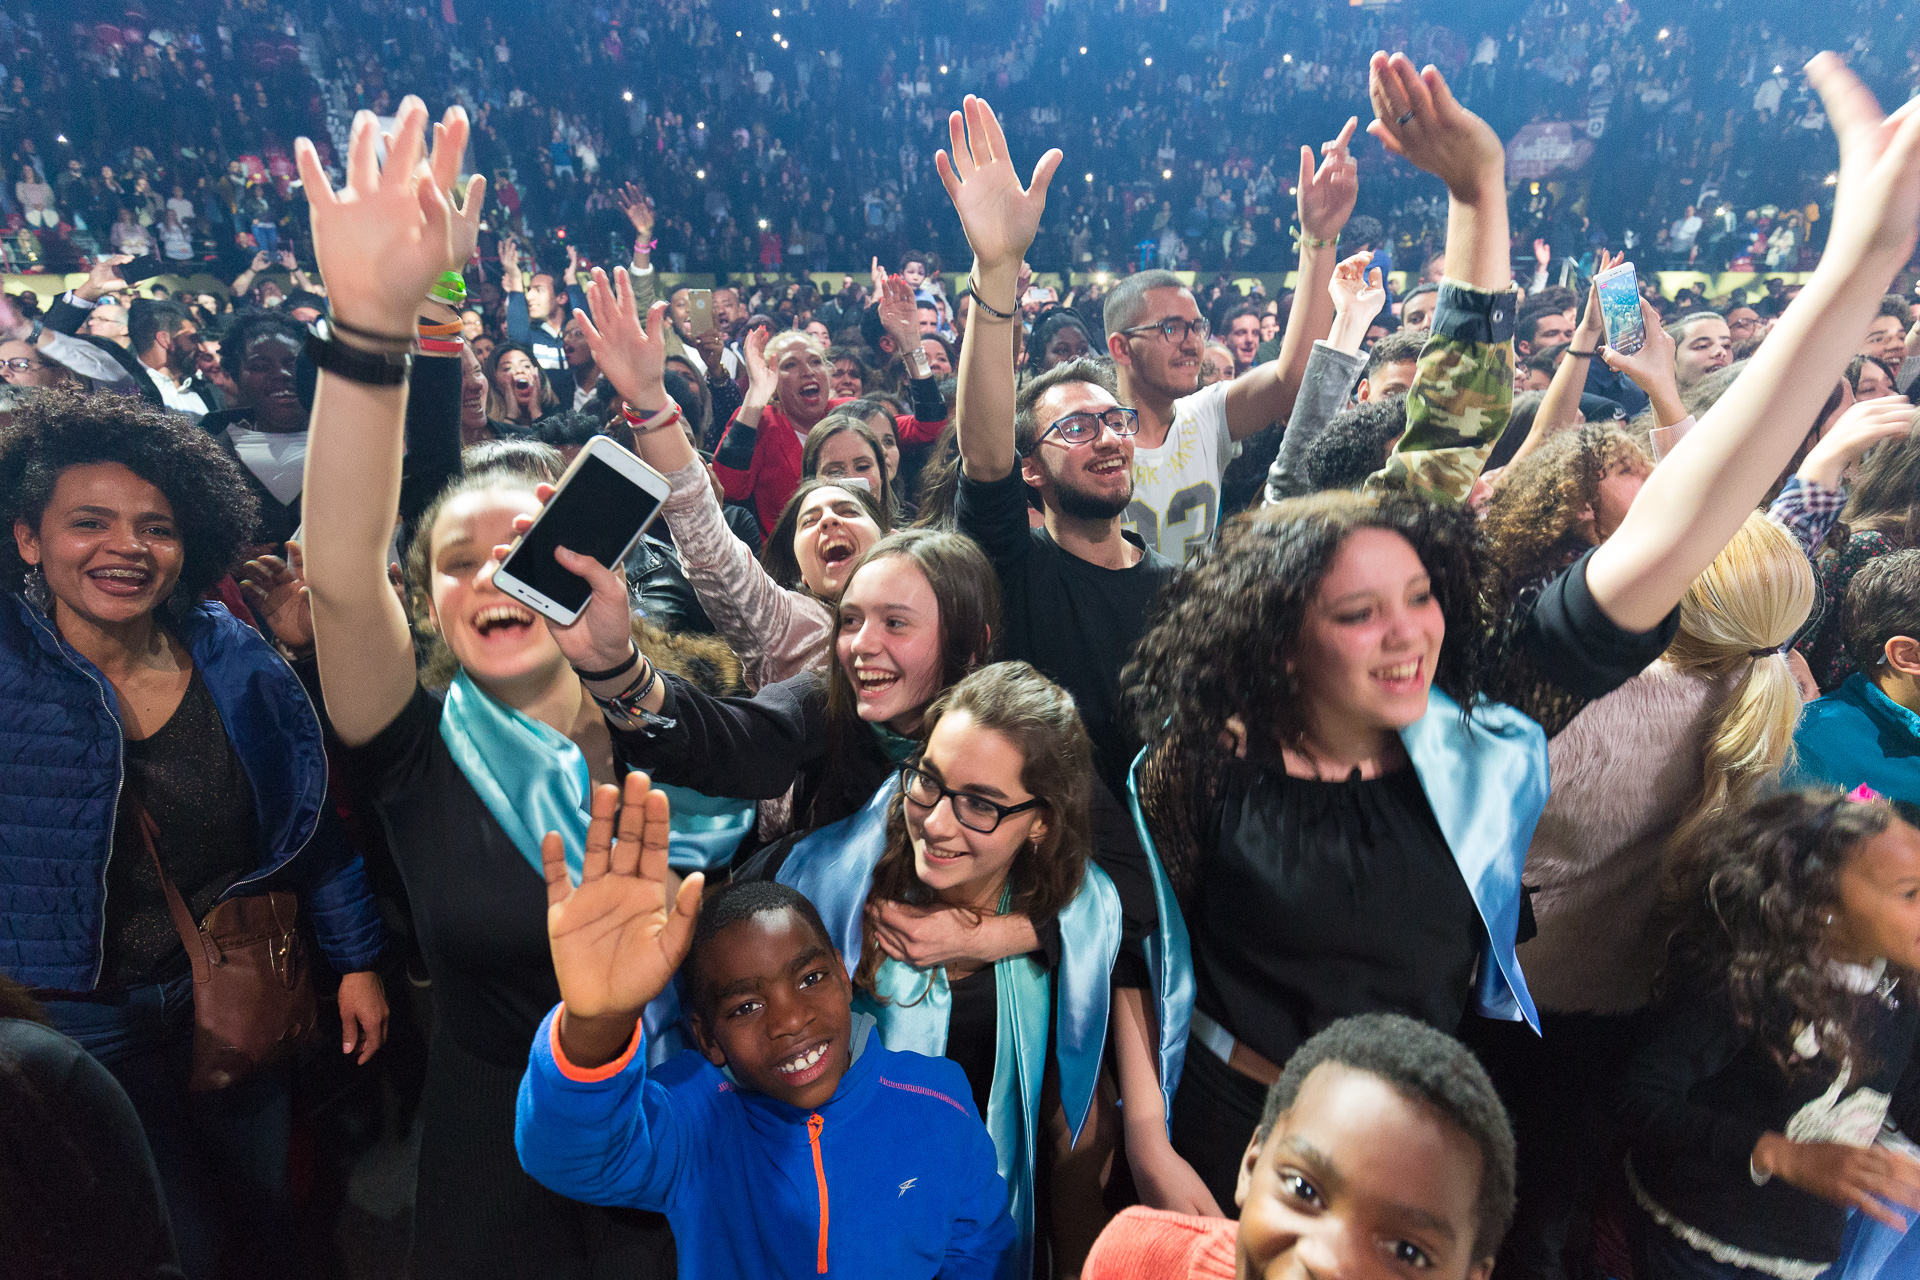 Excited teens at Festival of Hope